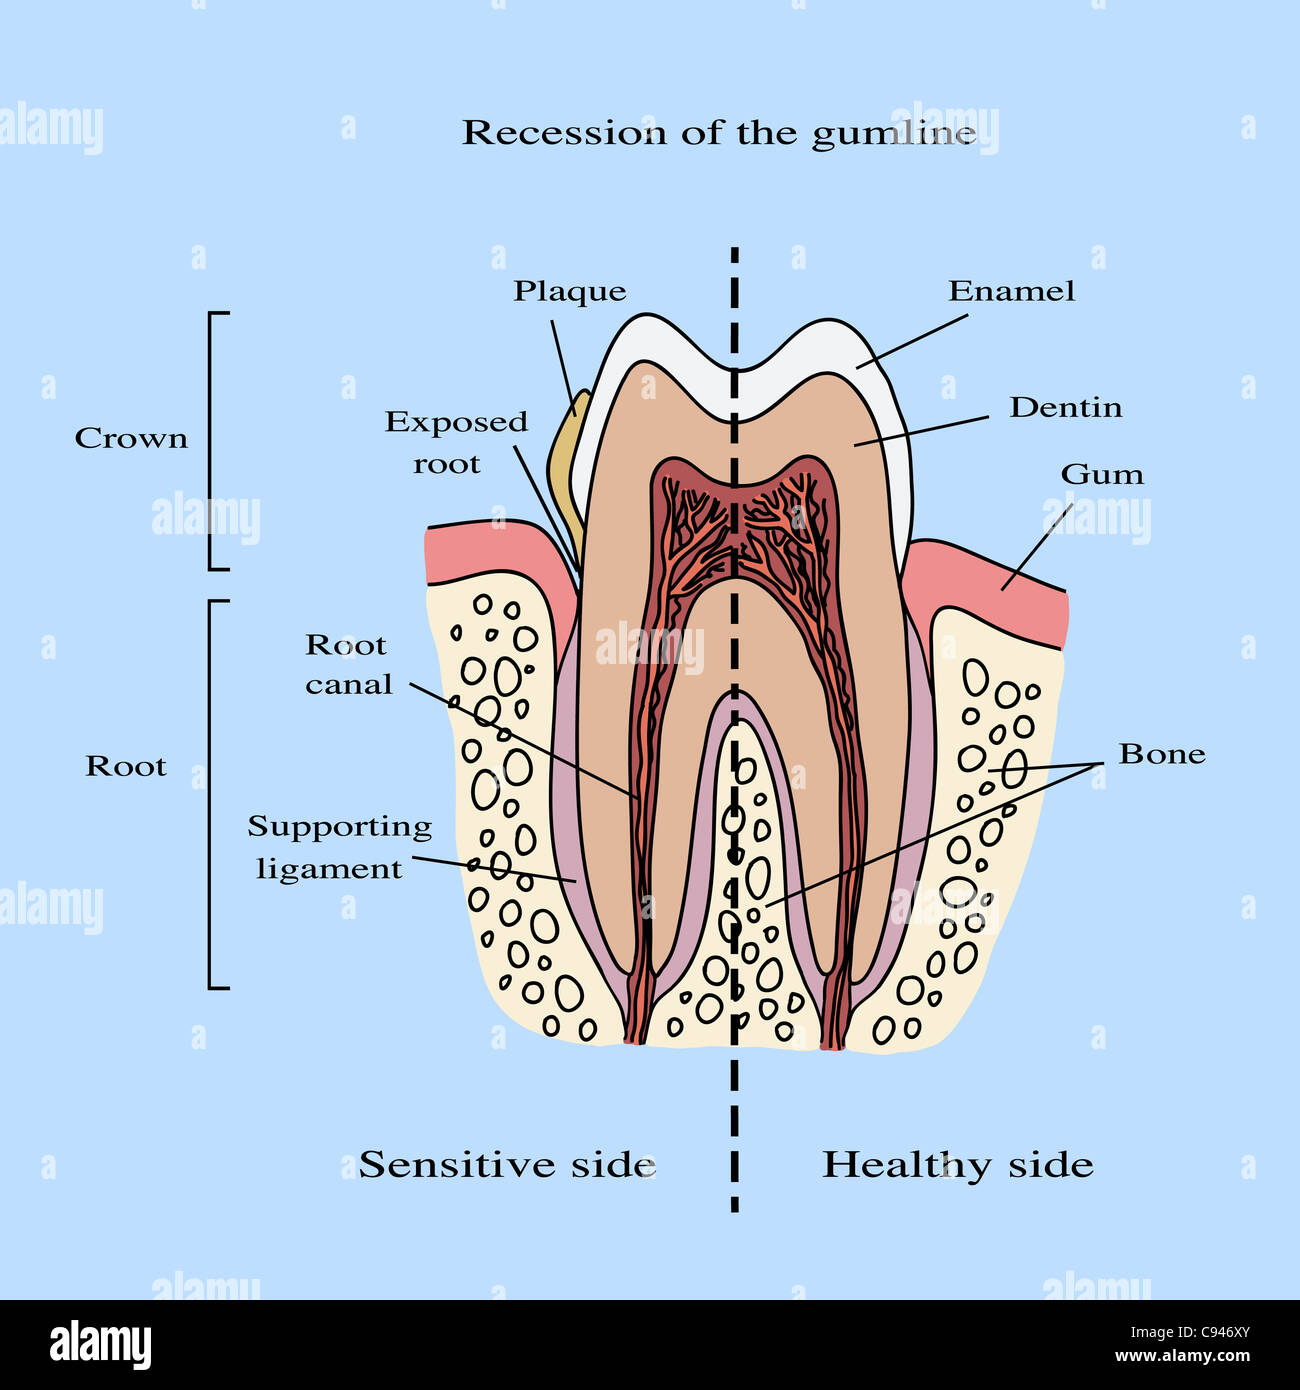 Anatomic Root Of The Tooth Stockfotos & Anatomic Root Of The Tooth ...